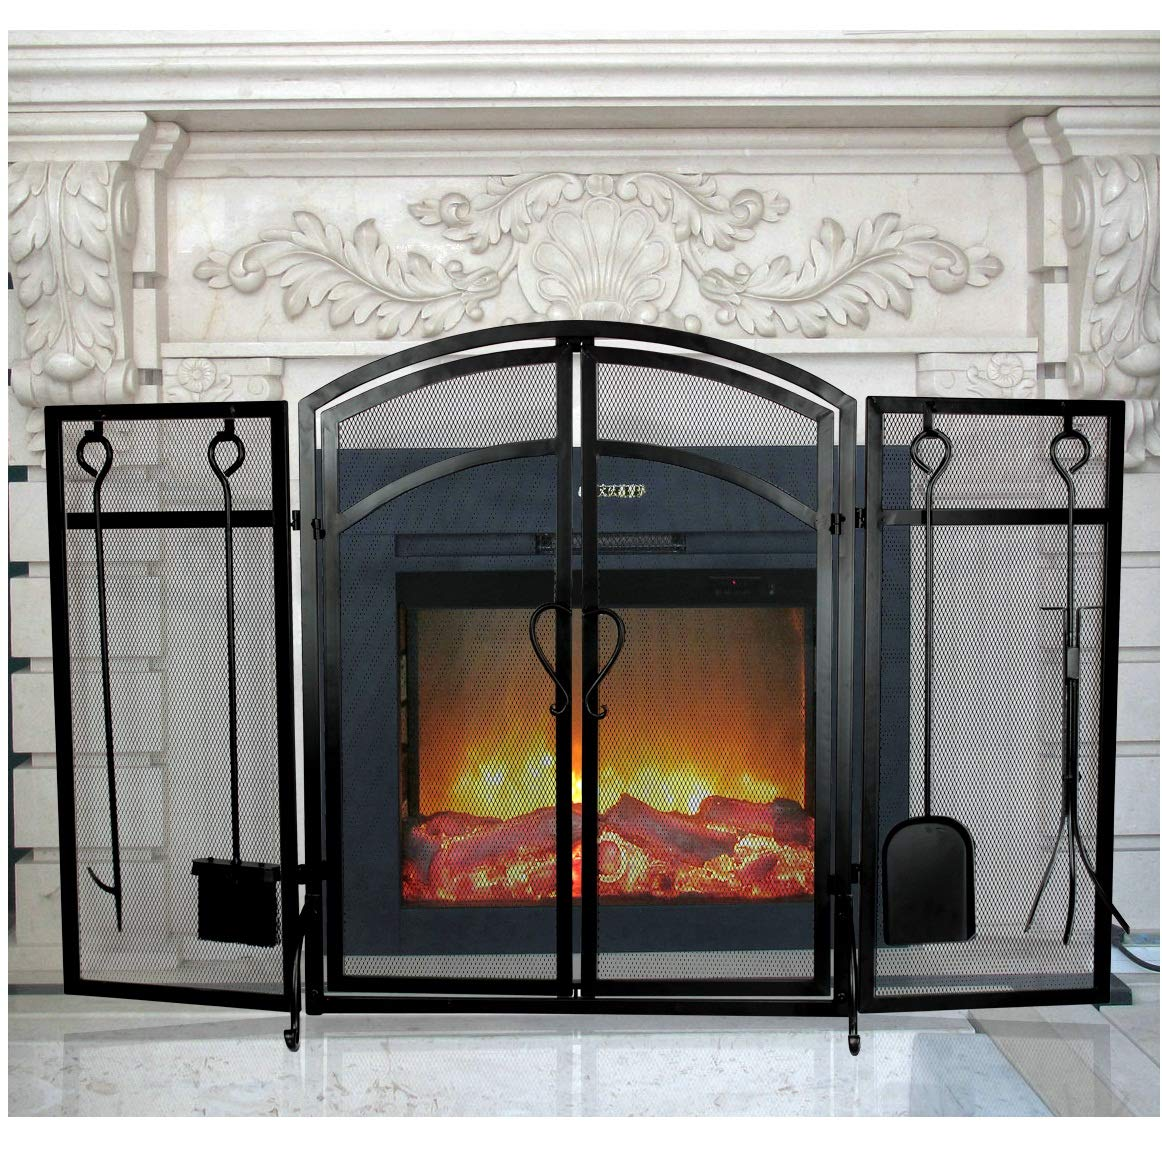 INNO STAGE 3-Panel Solid Fireplace Screen with 2 Doors and Fire Place Tools Sets - Extra Strength Wrought Iron Poker, Brush, Shovel and Firewood Tong Kit for Stove by INNO STAGE